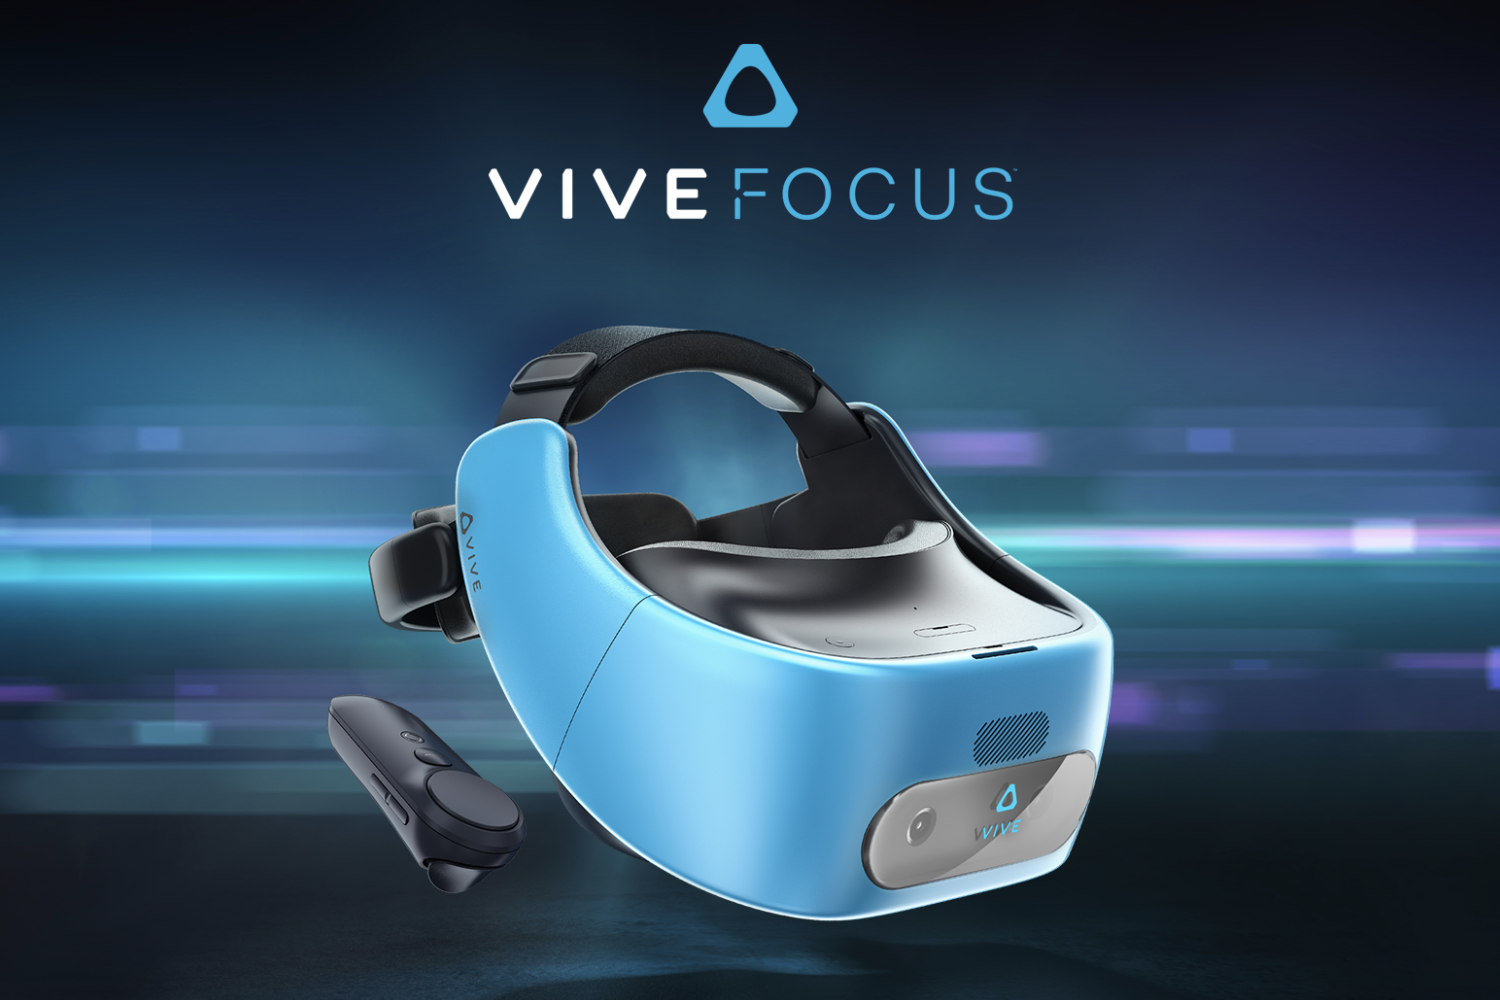 HTC's standalone virtual reality headset named the Vive Focus.